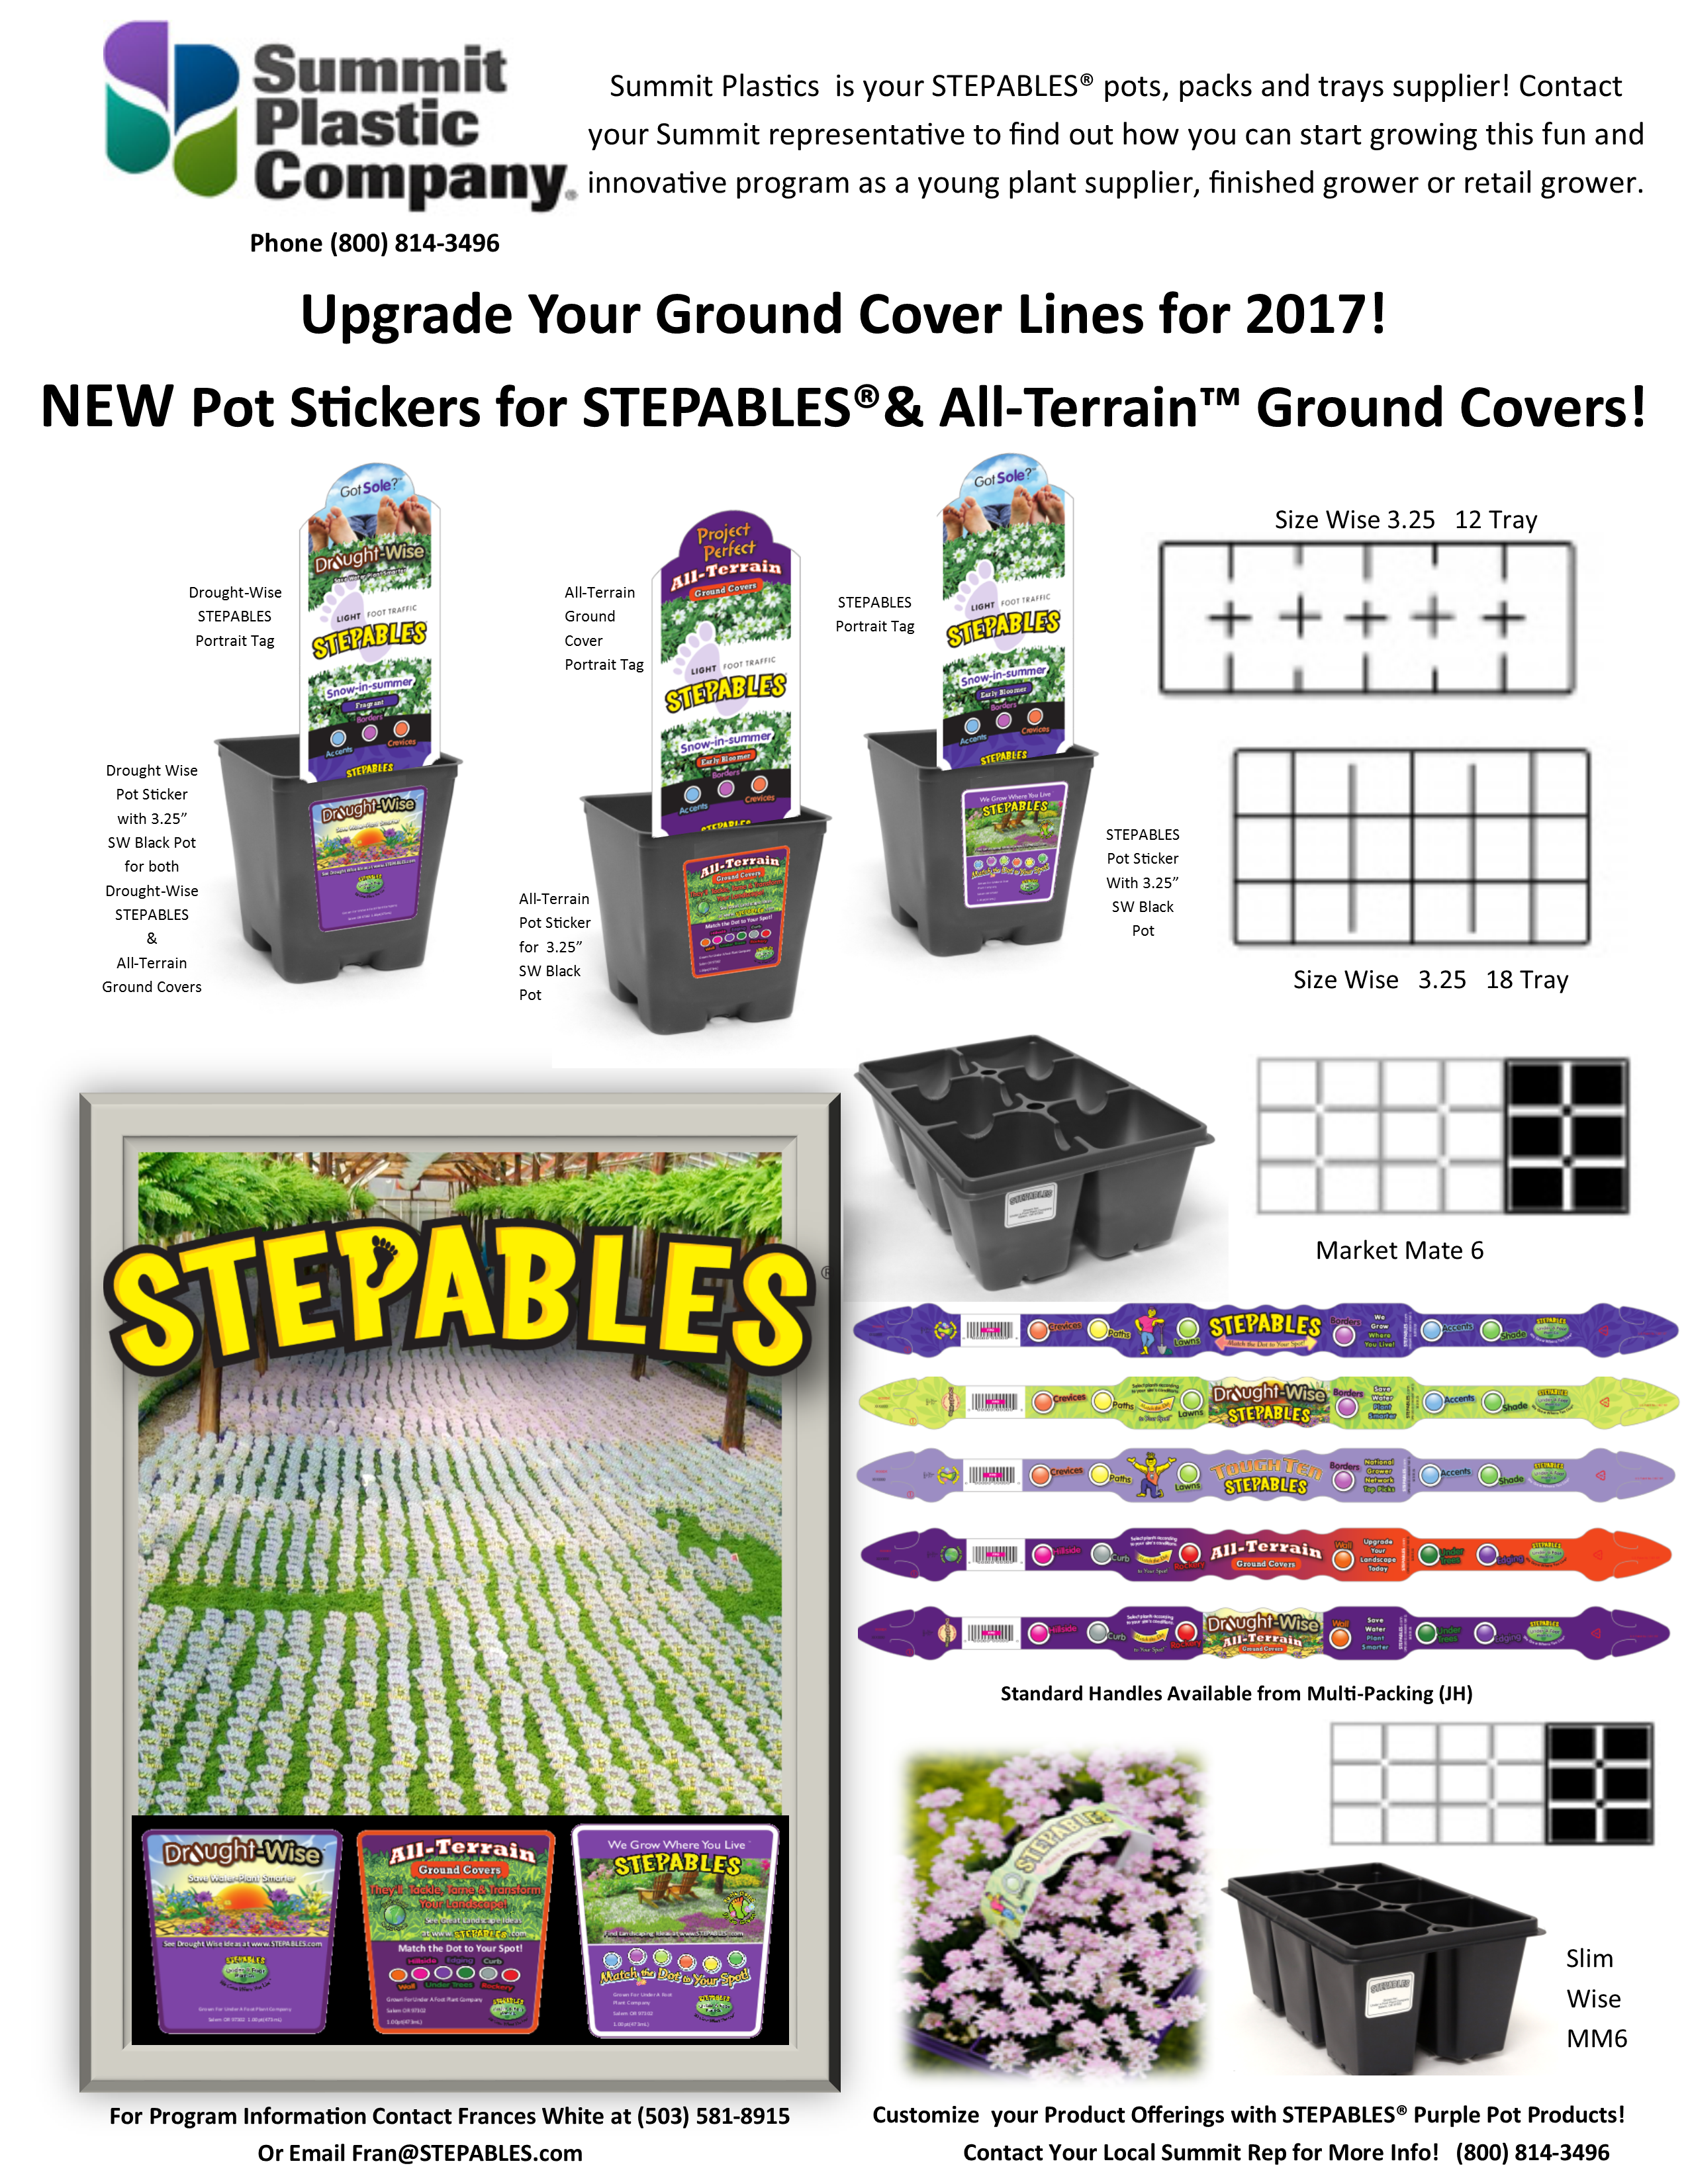 STEPABLES Summit Plastic Co Sales sheet 2016-17.png